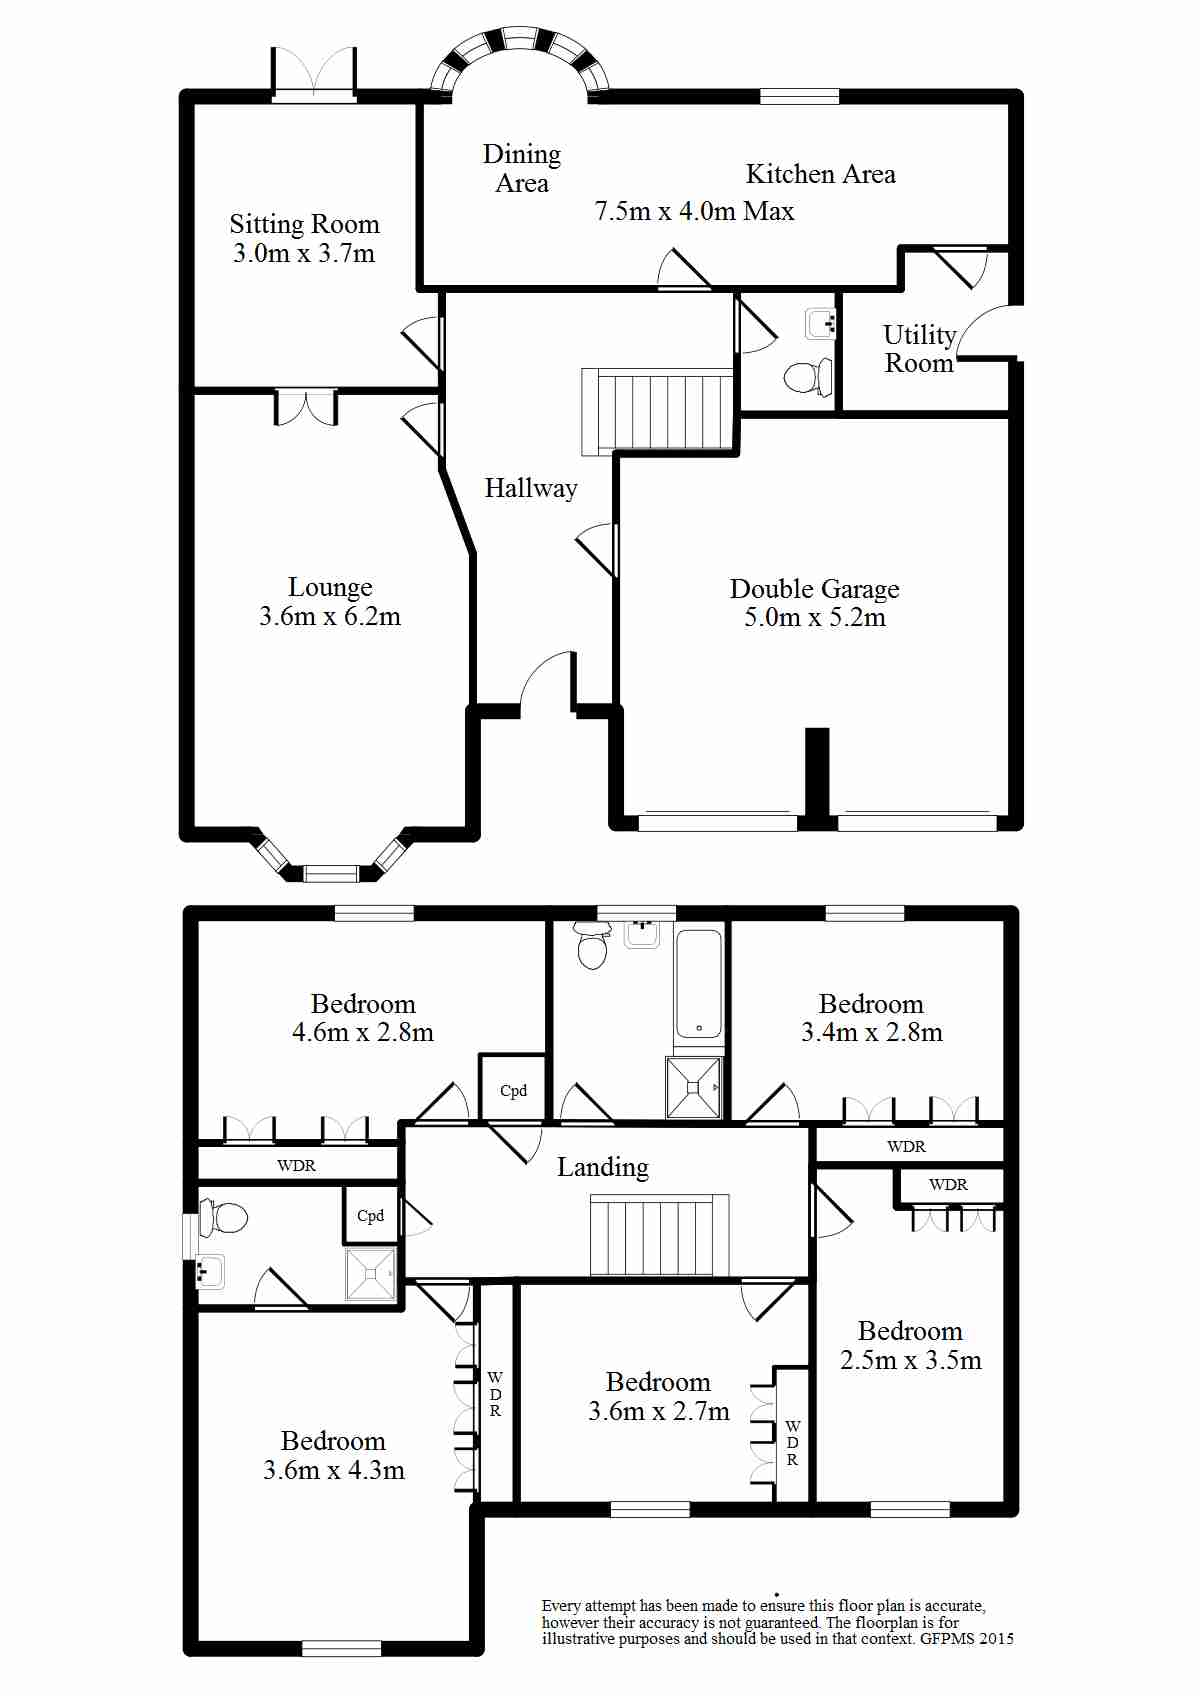 Effingham Road, Harden, Bingley floor plan